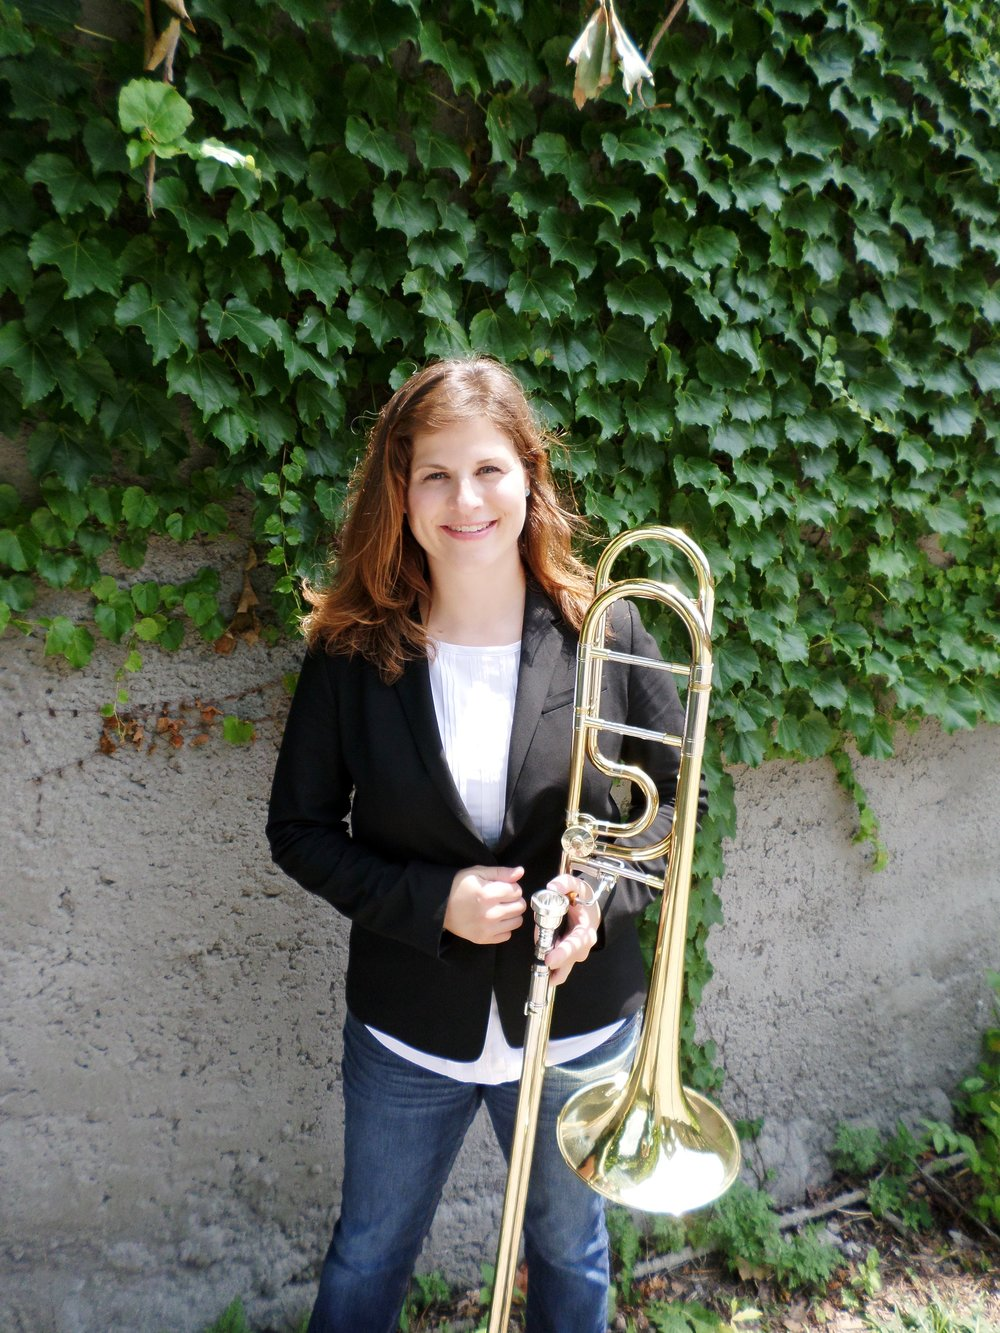 Amanda Stewart - Amanda Stewart is currently Associate Principal Trombone of the St. Louis Symphony, a position she began in the Fall of 2014.  Her studies started with Harold Hudnall and continued with Keith Jackson, professor of trombone and euphonium at West Virginia University. She received her bachelor of music degree from The Juilliard School in 2004, studying with Joseph Alessi.As an orchestral musician, Ms. Stewart has played with numerous orchestras.  She was Principal trombonist of the San Antonio Symphony for eight seasons and Associate Principal trombonist of the New York Philharmonic for two seasons.  Ms. Stewart has also been a regular substitute and extra player with the Boston Symphony and has toured with them internationally.  She has also performed with the Baltimore, Dallas, Houston, Kansas City, National, North Carolina, and Toronto Symphonies.